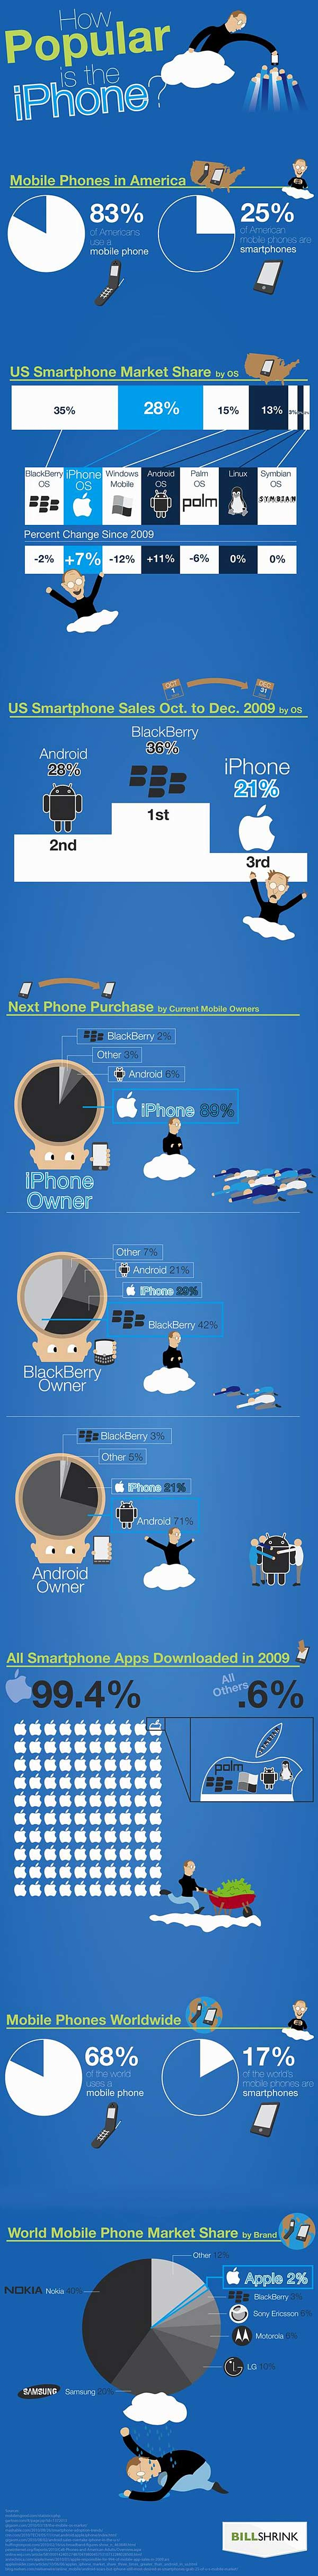 So just how popular is the iPhone?